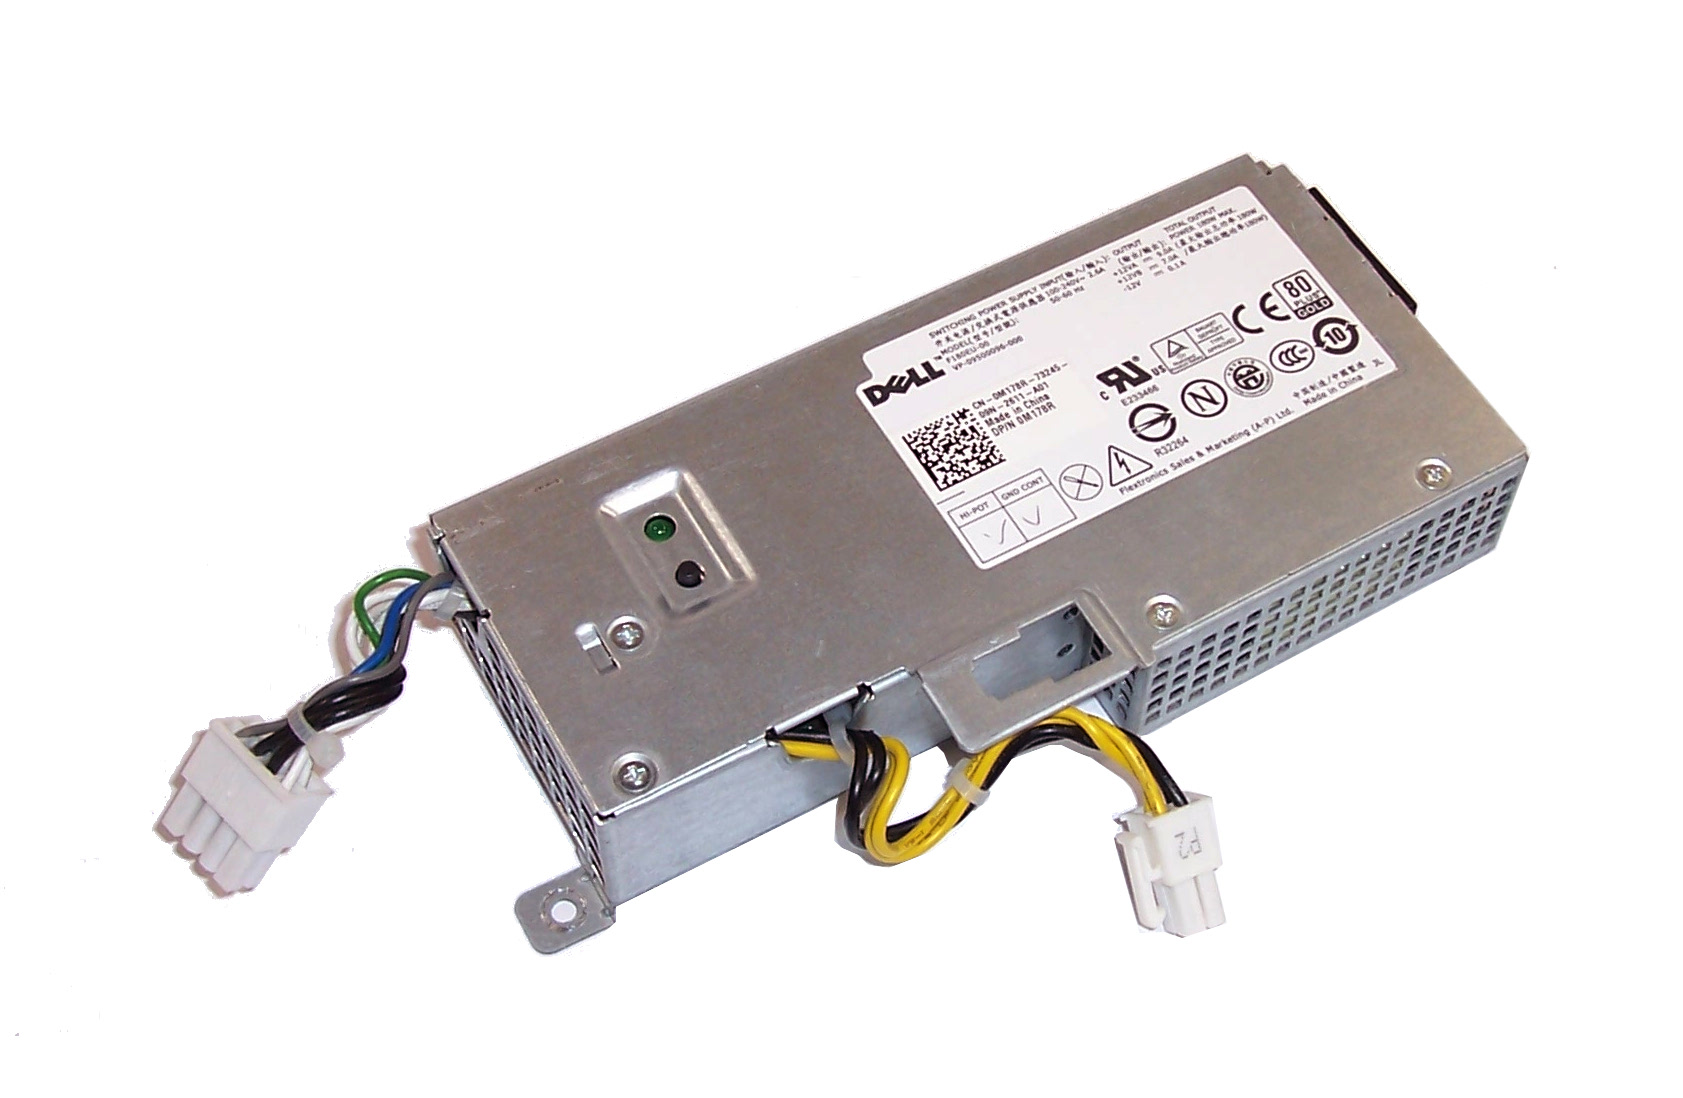 Dell M178R 180W Power Supply For Optiplex 780 USFF PC